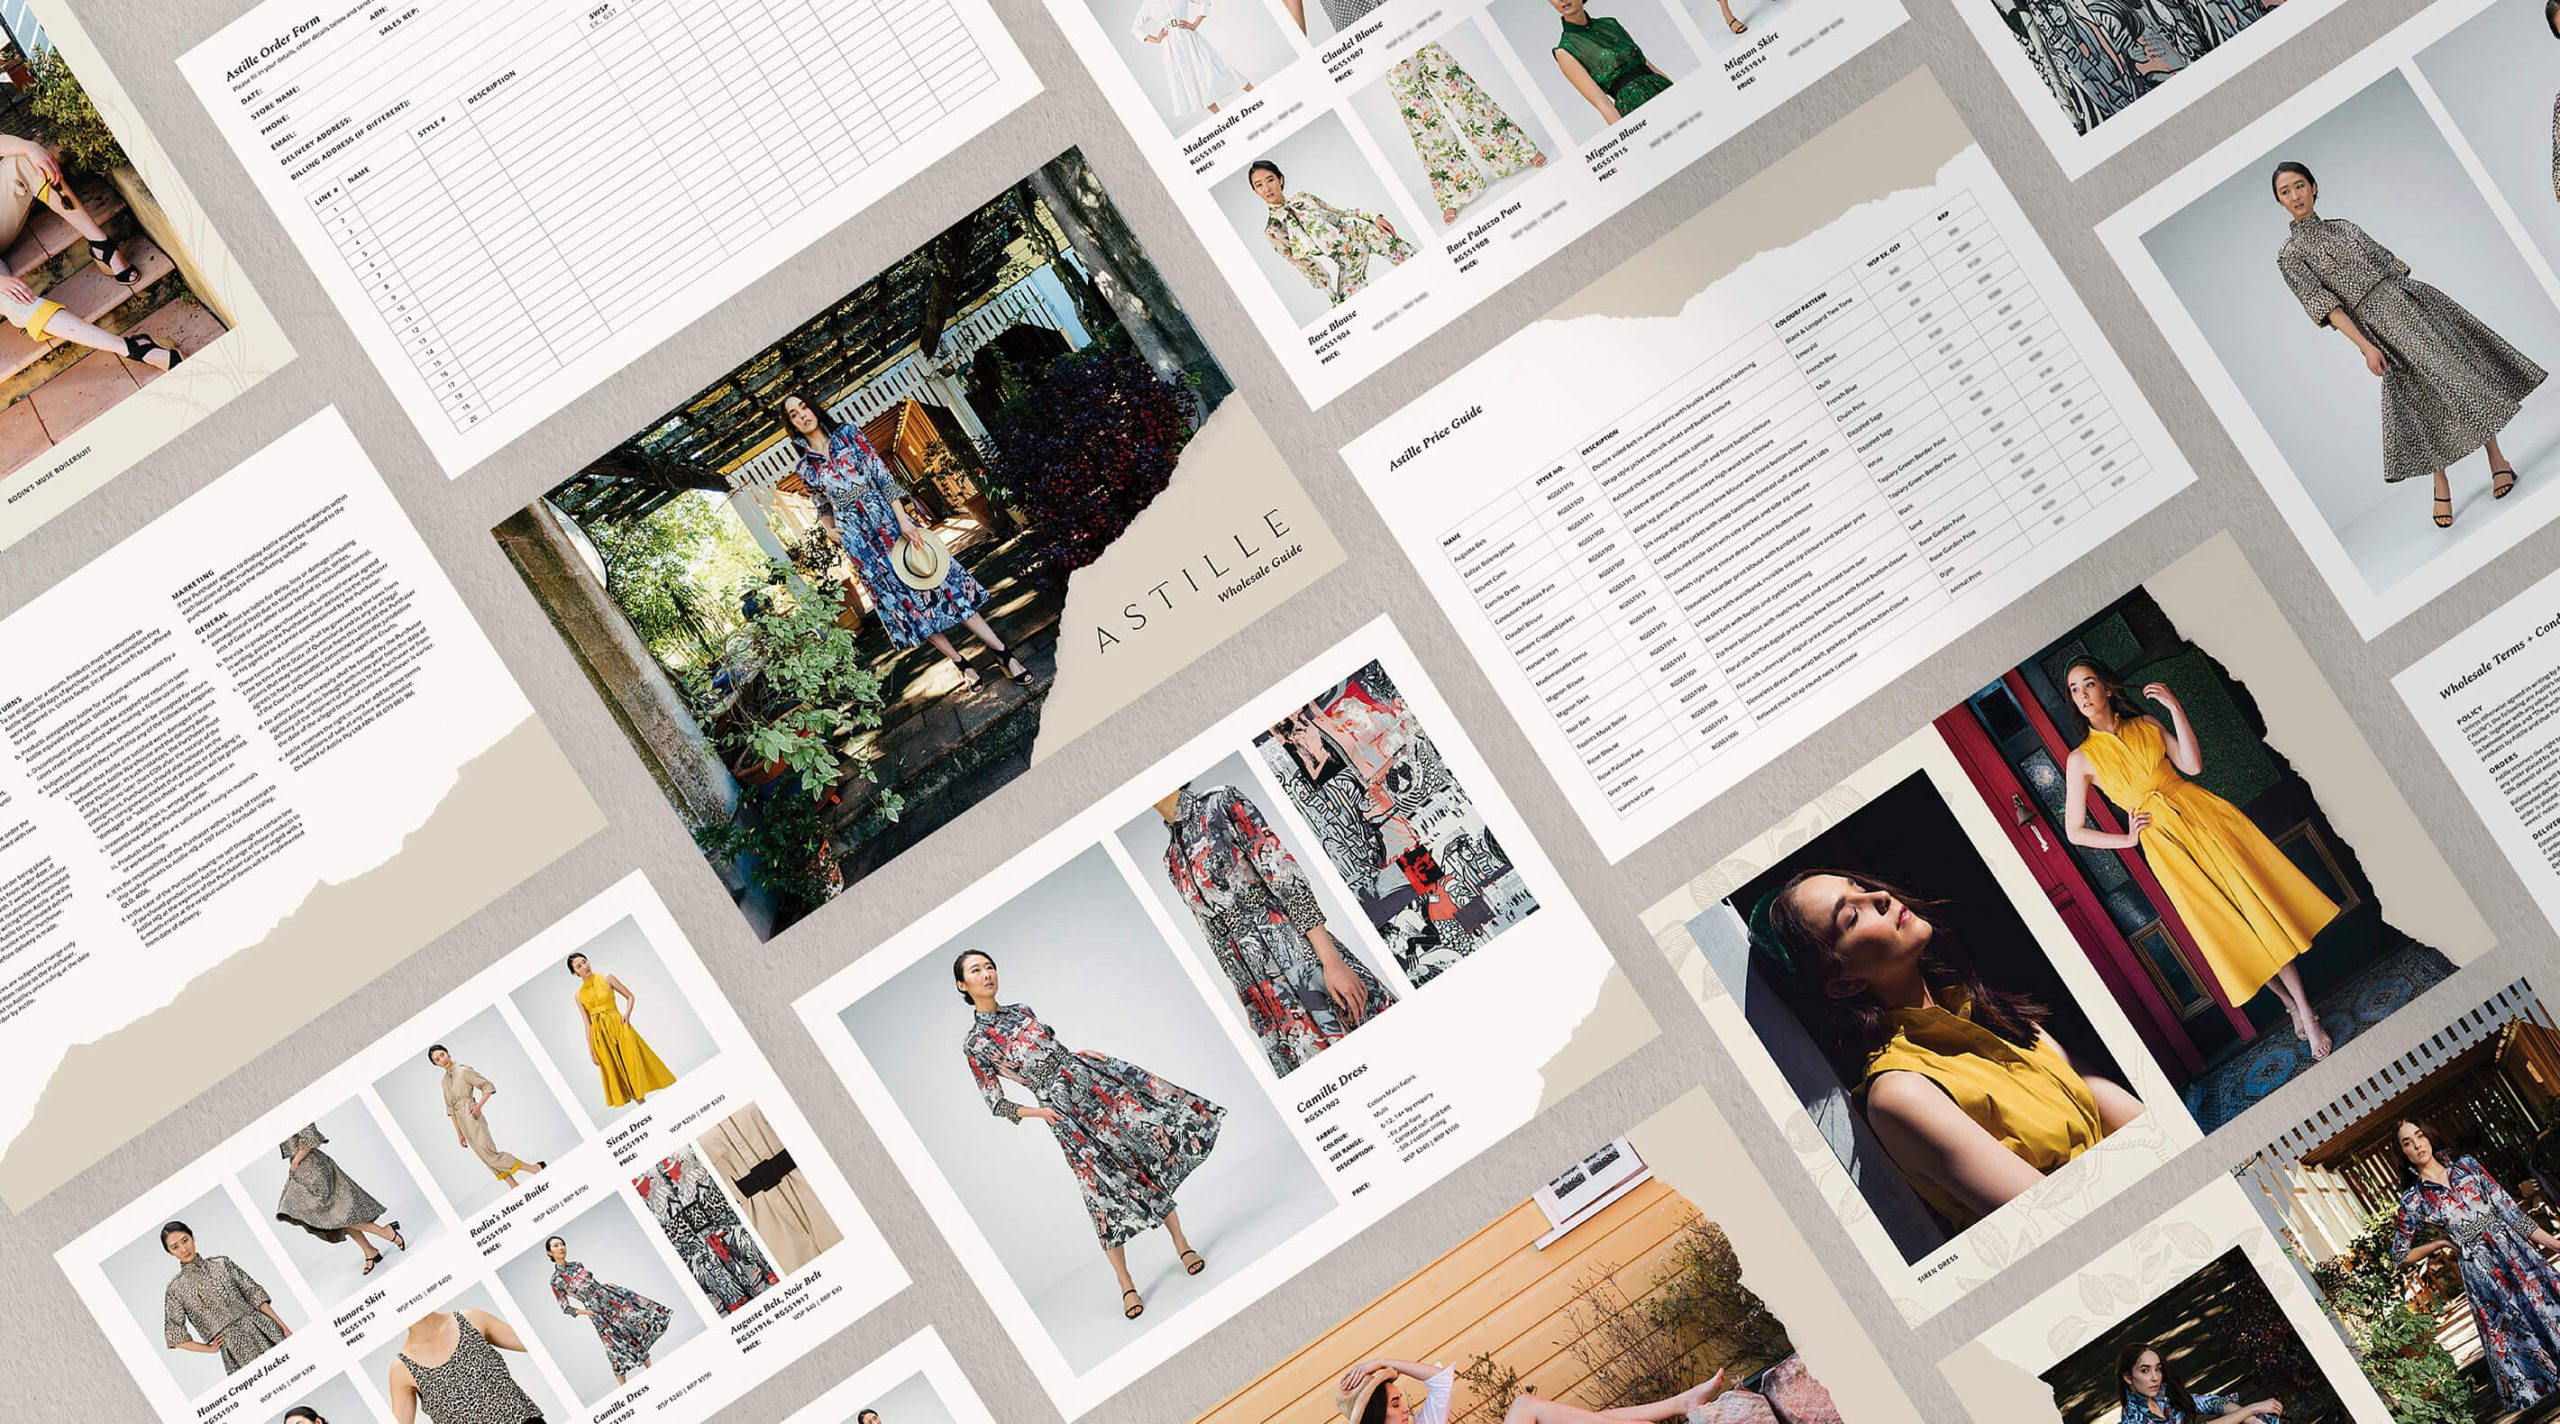 Multiple pages from Astille high end wholesale kit showing order forms, lookbook layouts and product details